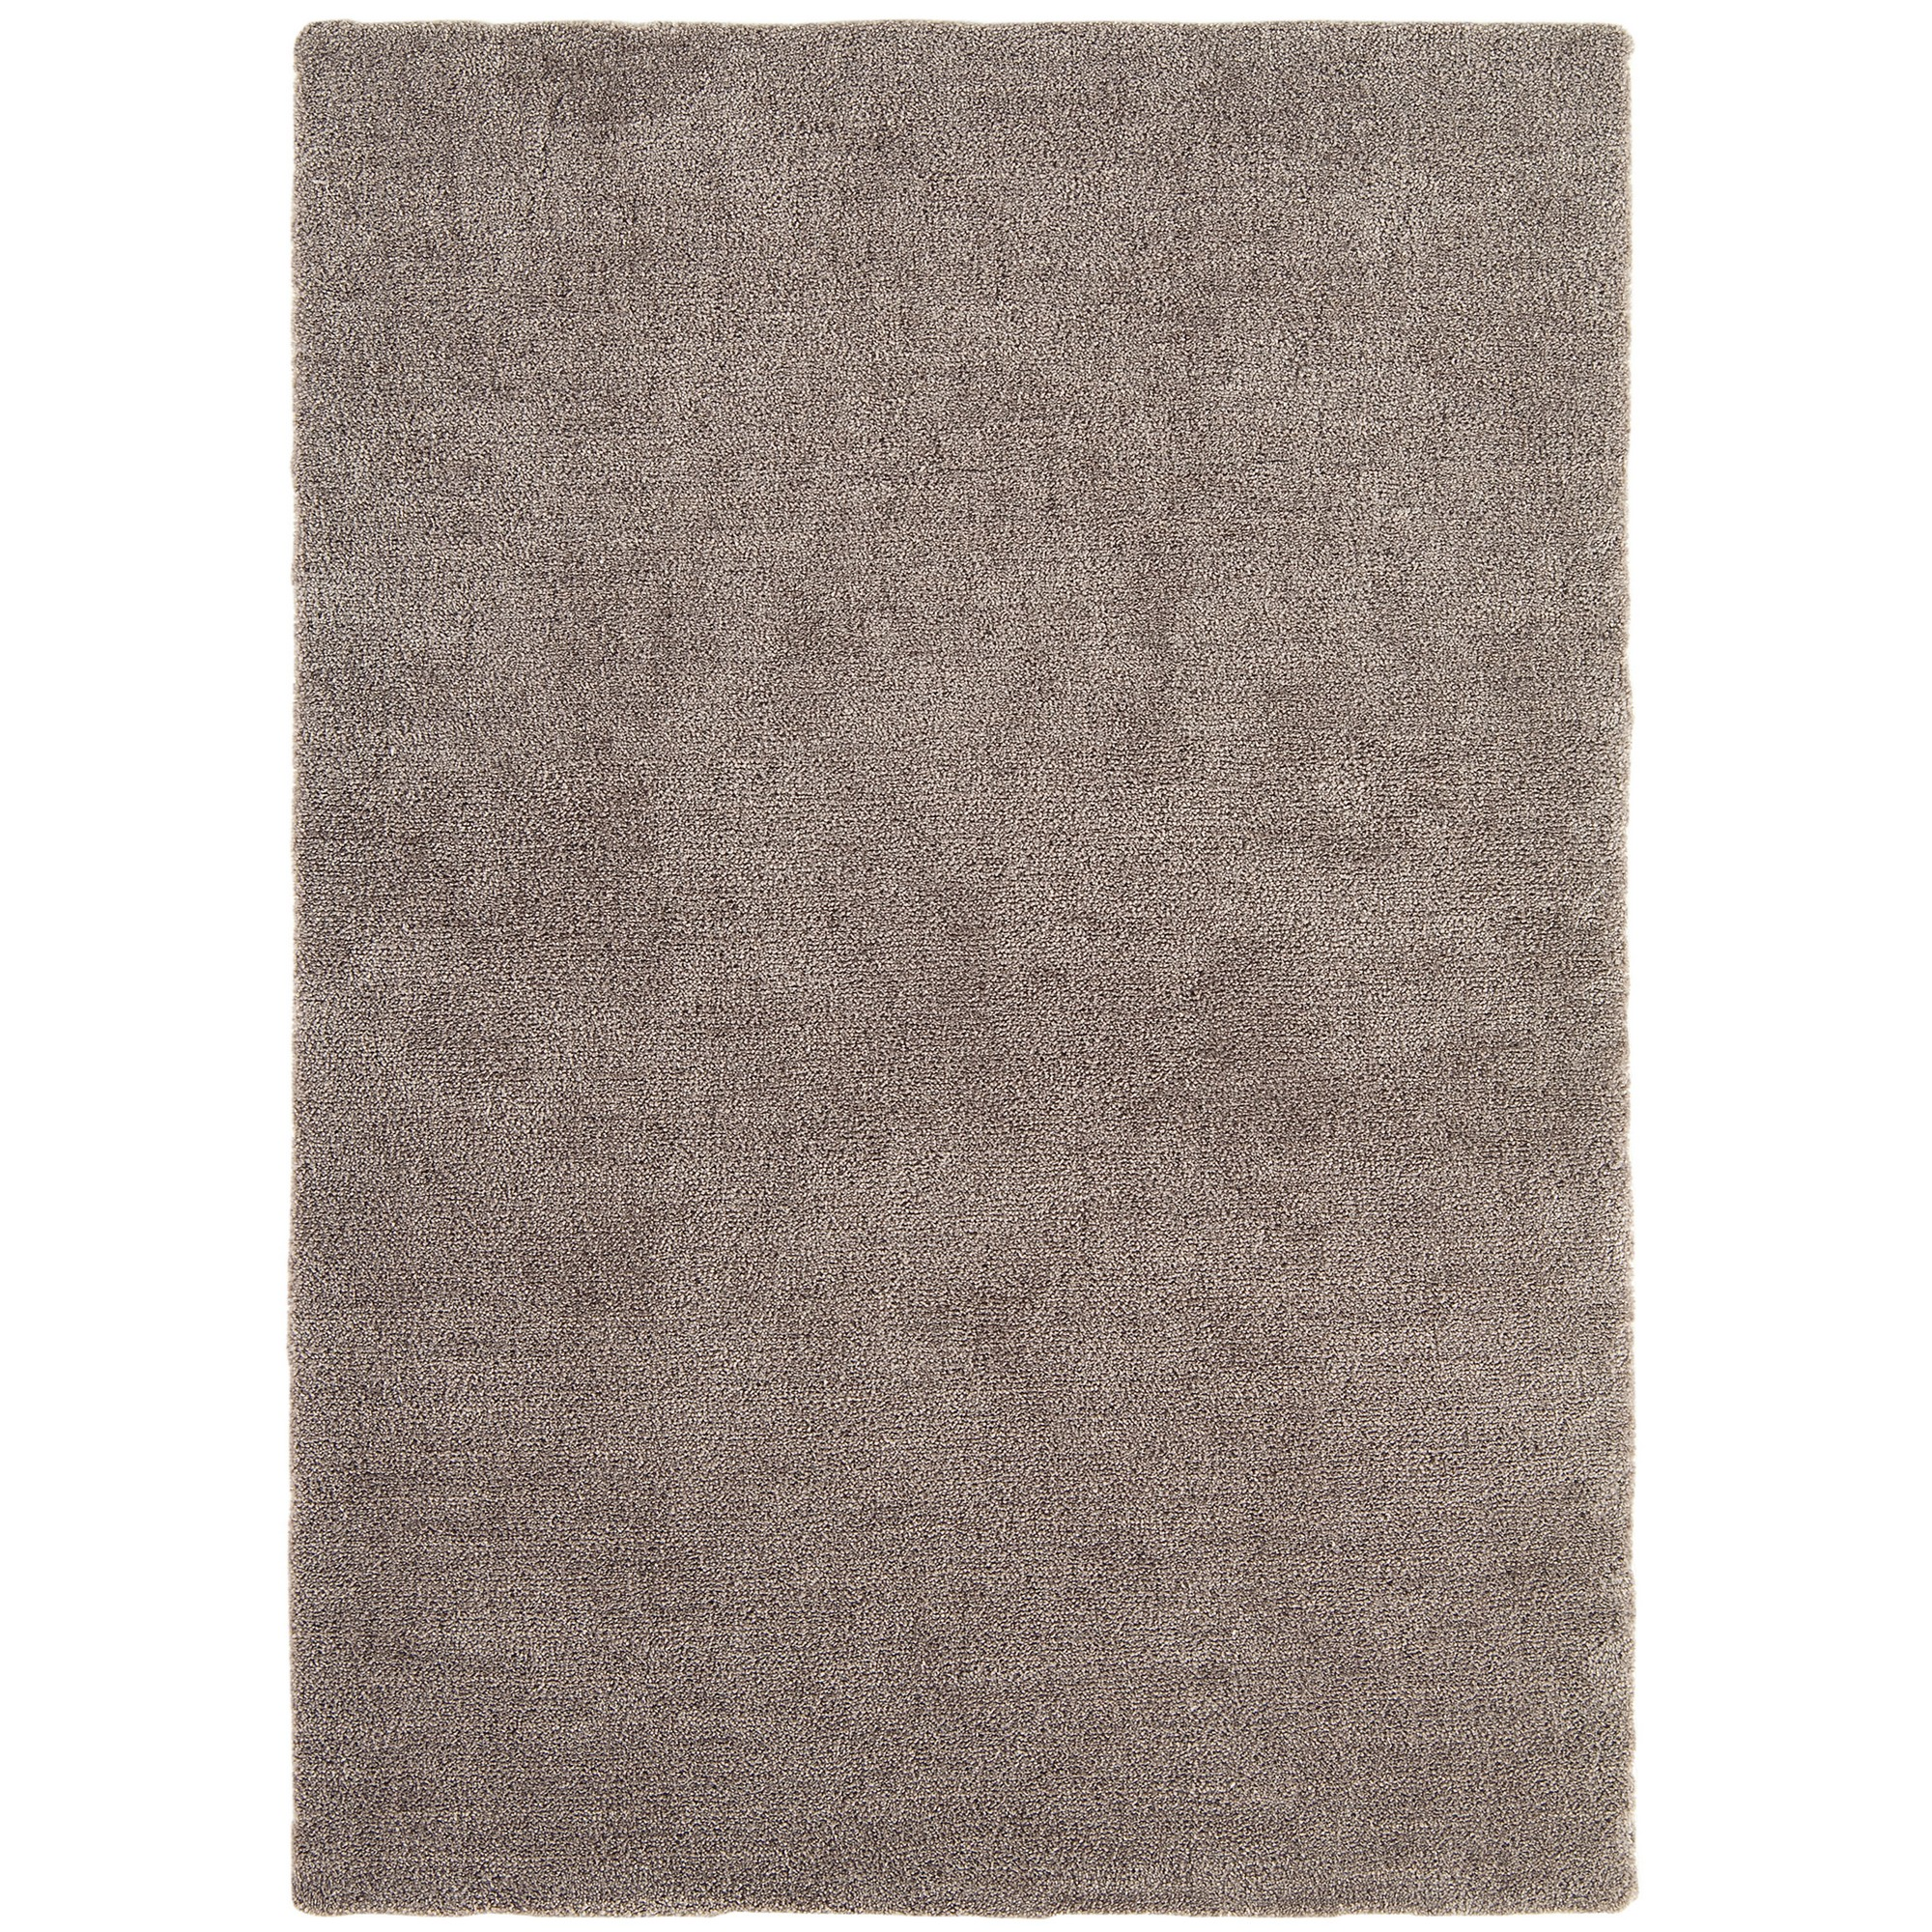 Tula Plain Rugs in Sand